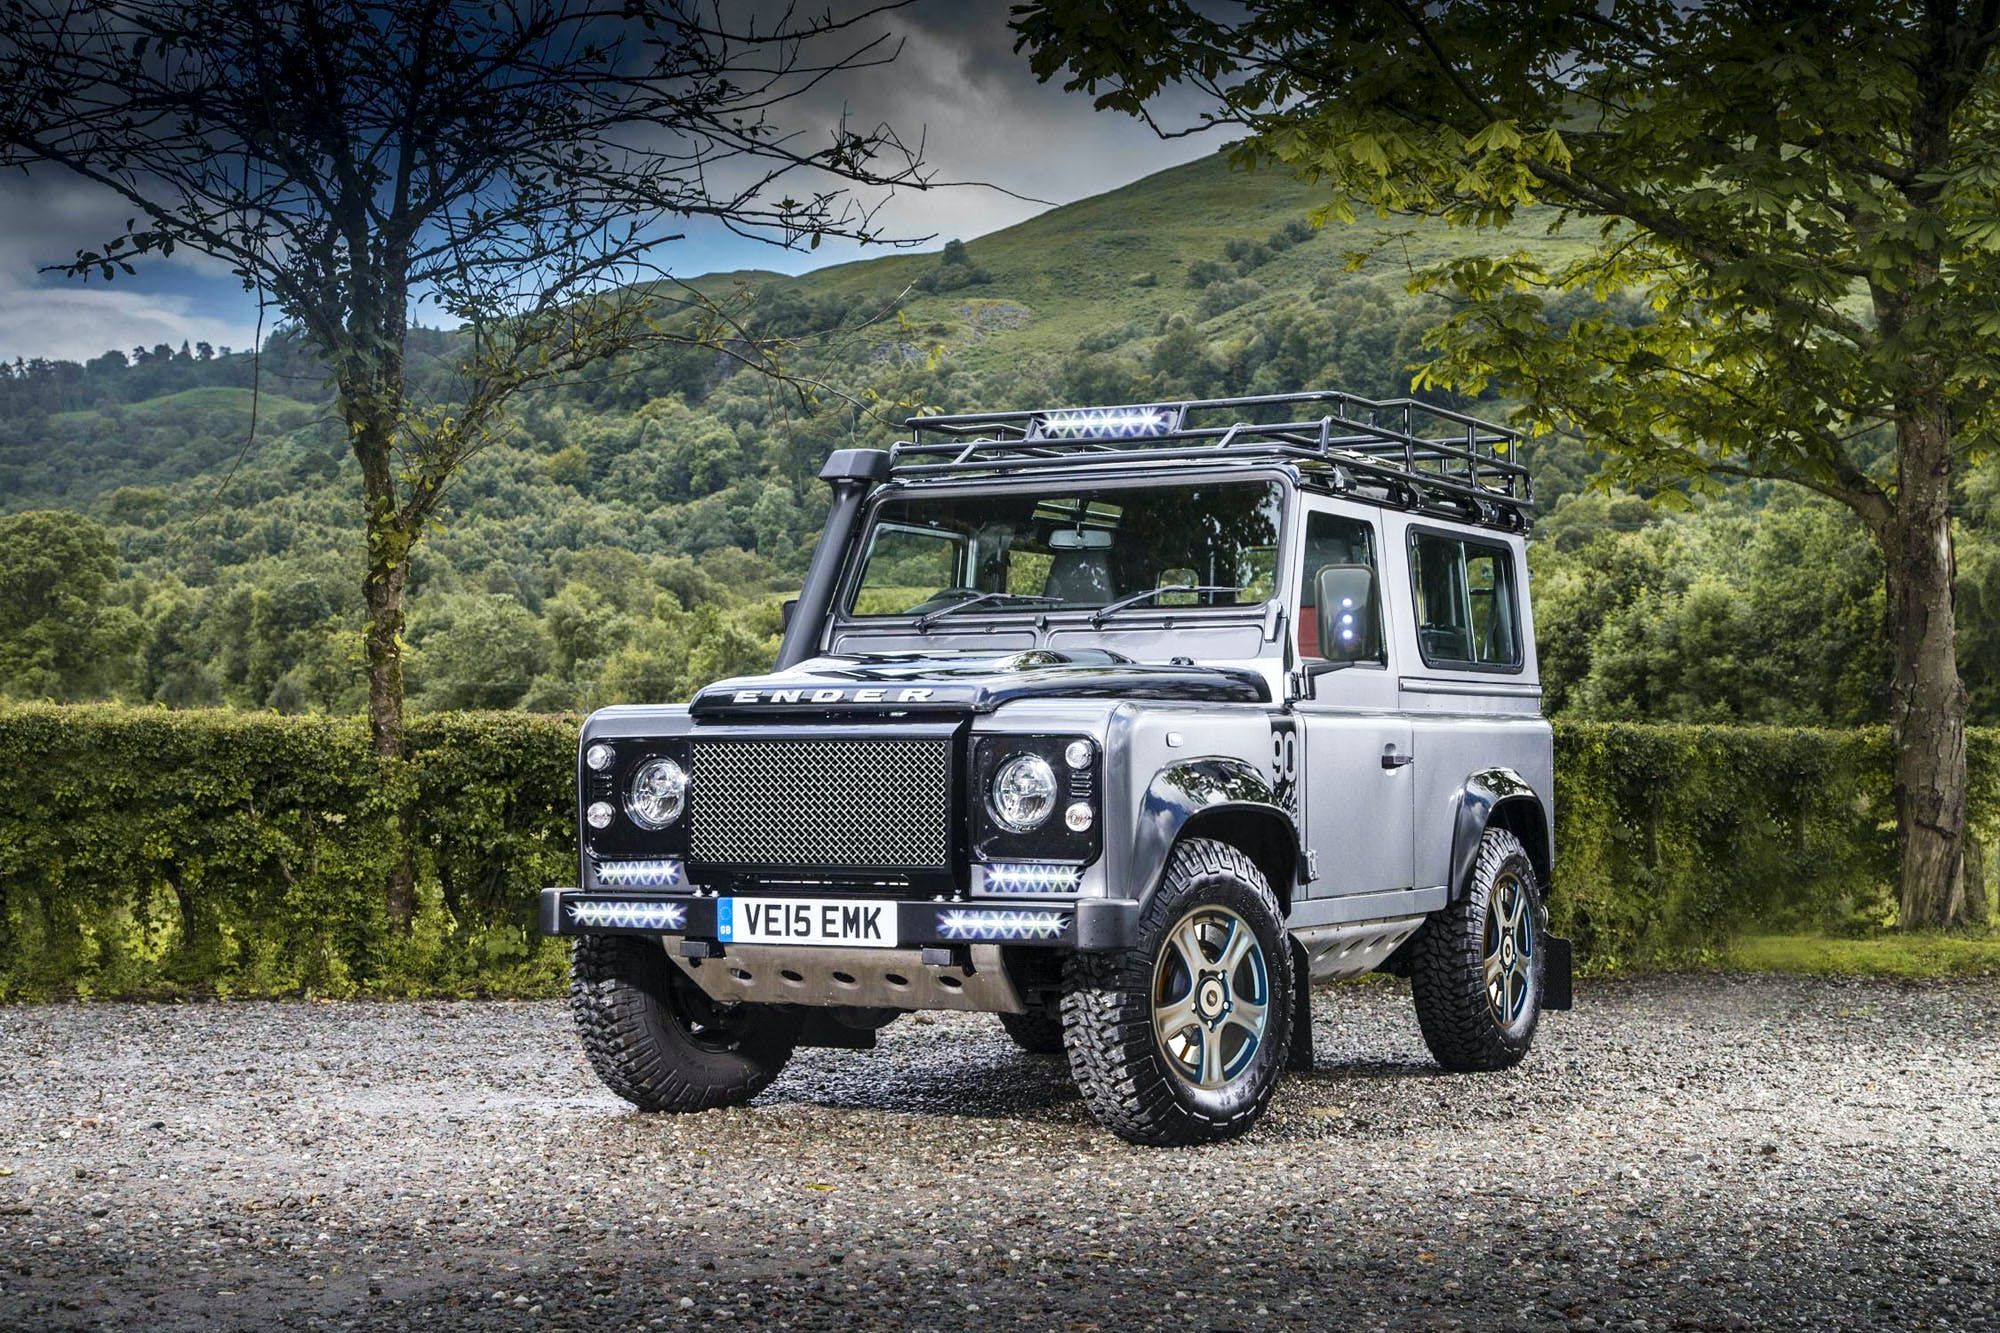 Boom Times For Companies That Completely Ruin Land Rover Defenders Defender Clutch Furthermore It Seems The Time Spoil Has Had A Knock On Effect Suppliers Such As Makers Of Horrible Alloy Wheels